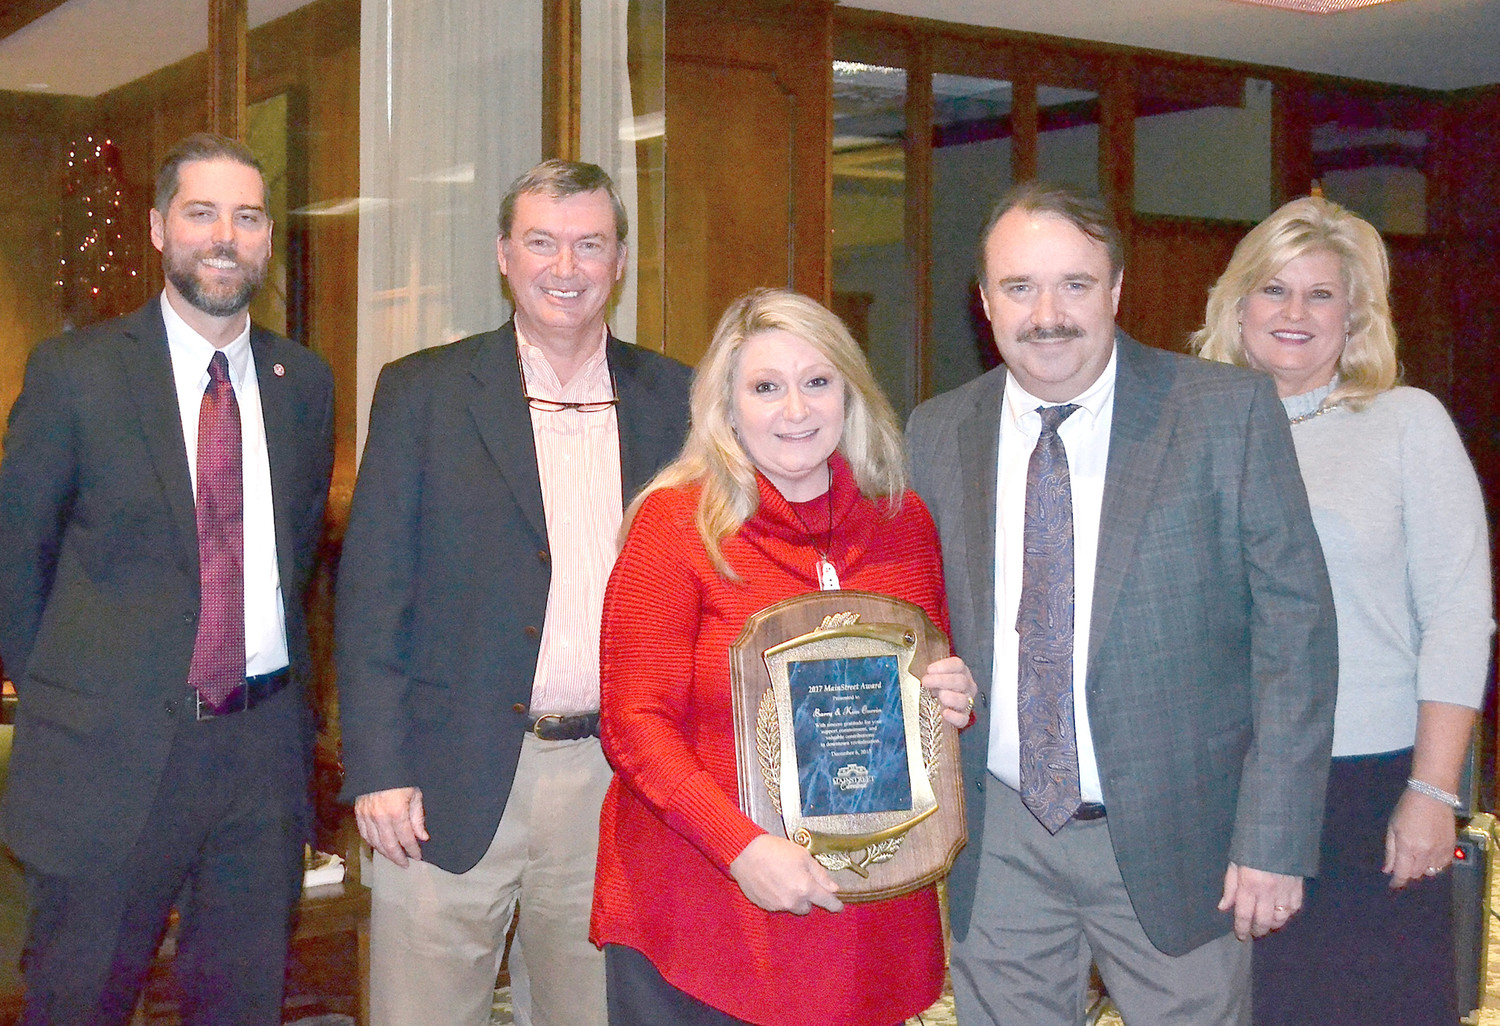 BARRY AND KIM CURRIN have won the 2017 MainStreet Cleveland Award. From left are Corey Divel, award presenter, MainStreet board chairman Keith Barrett, Kim and Barry Currin, and MainStreet Cleveland Executive Director Sharon Marr.